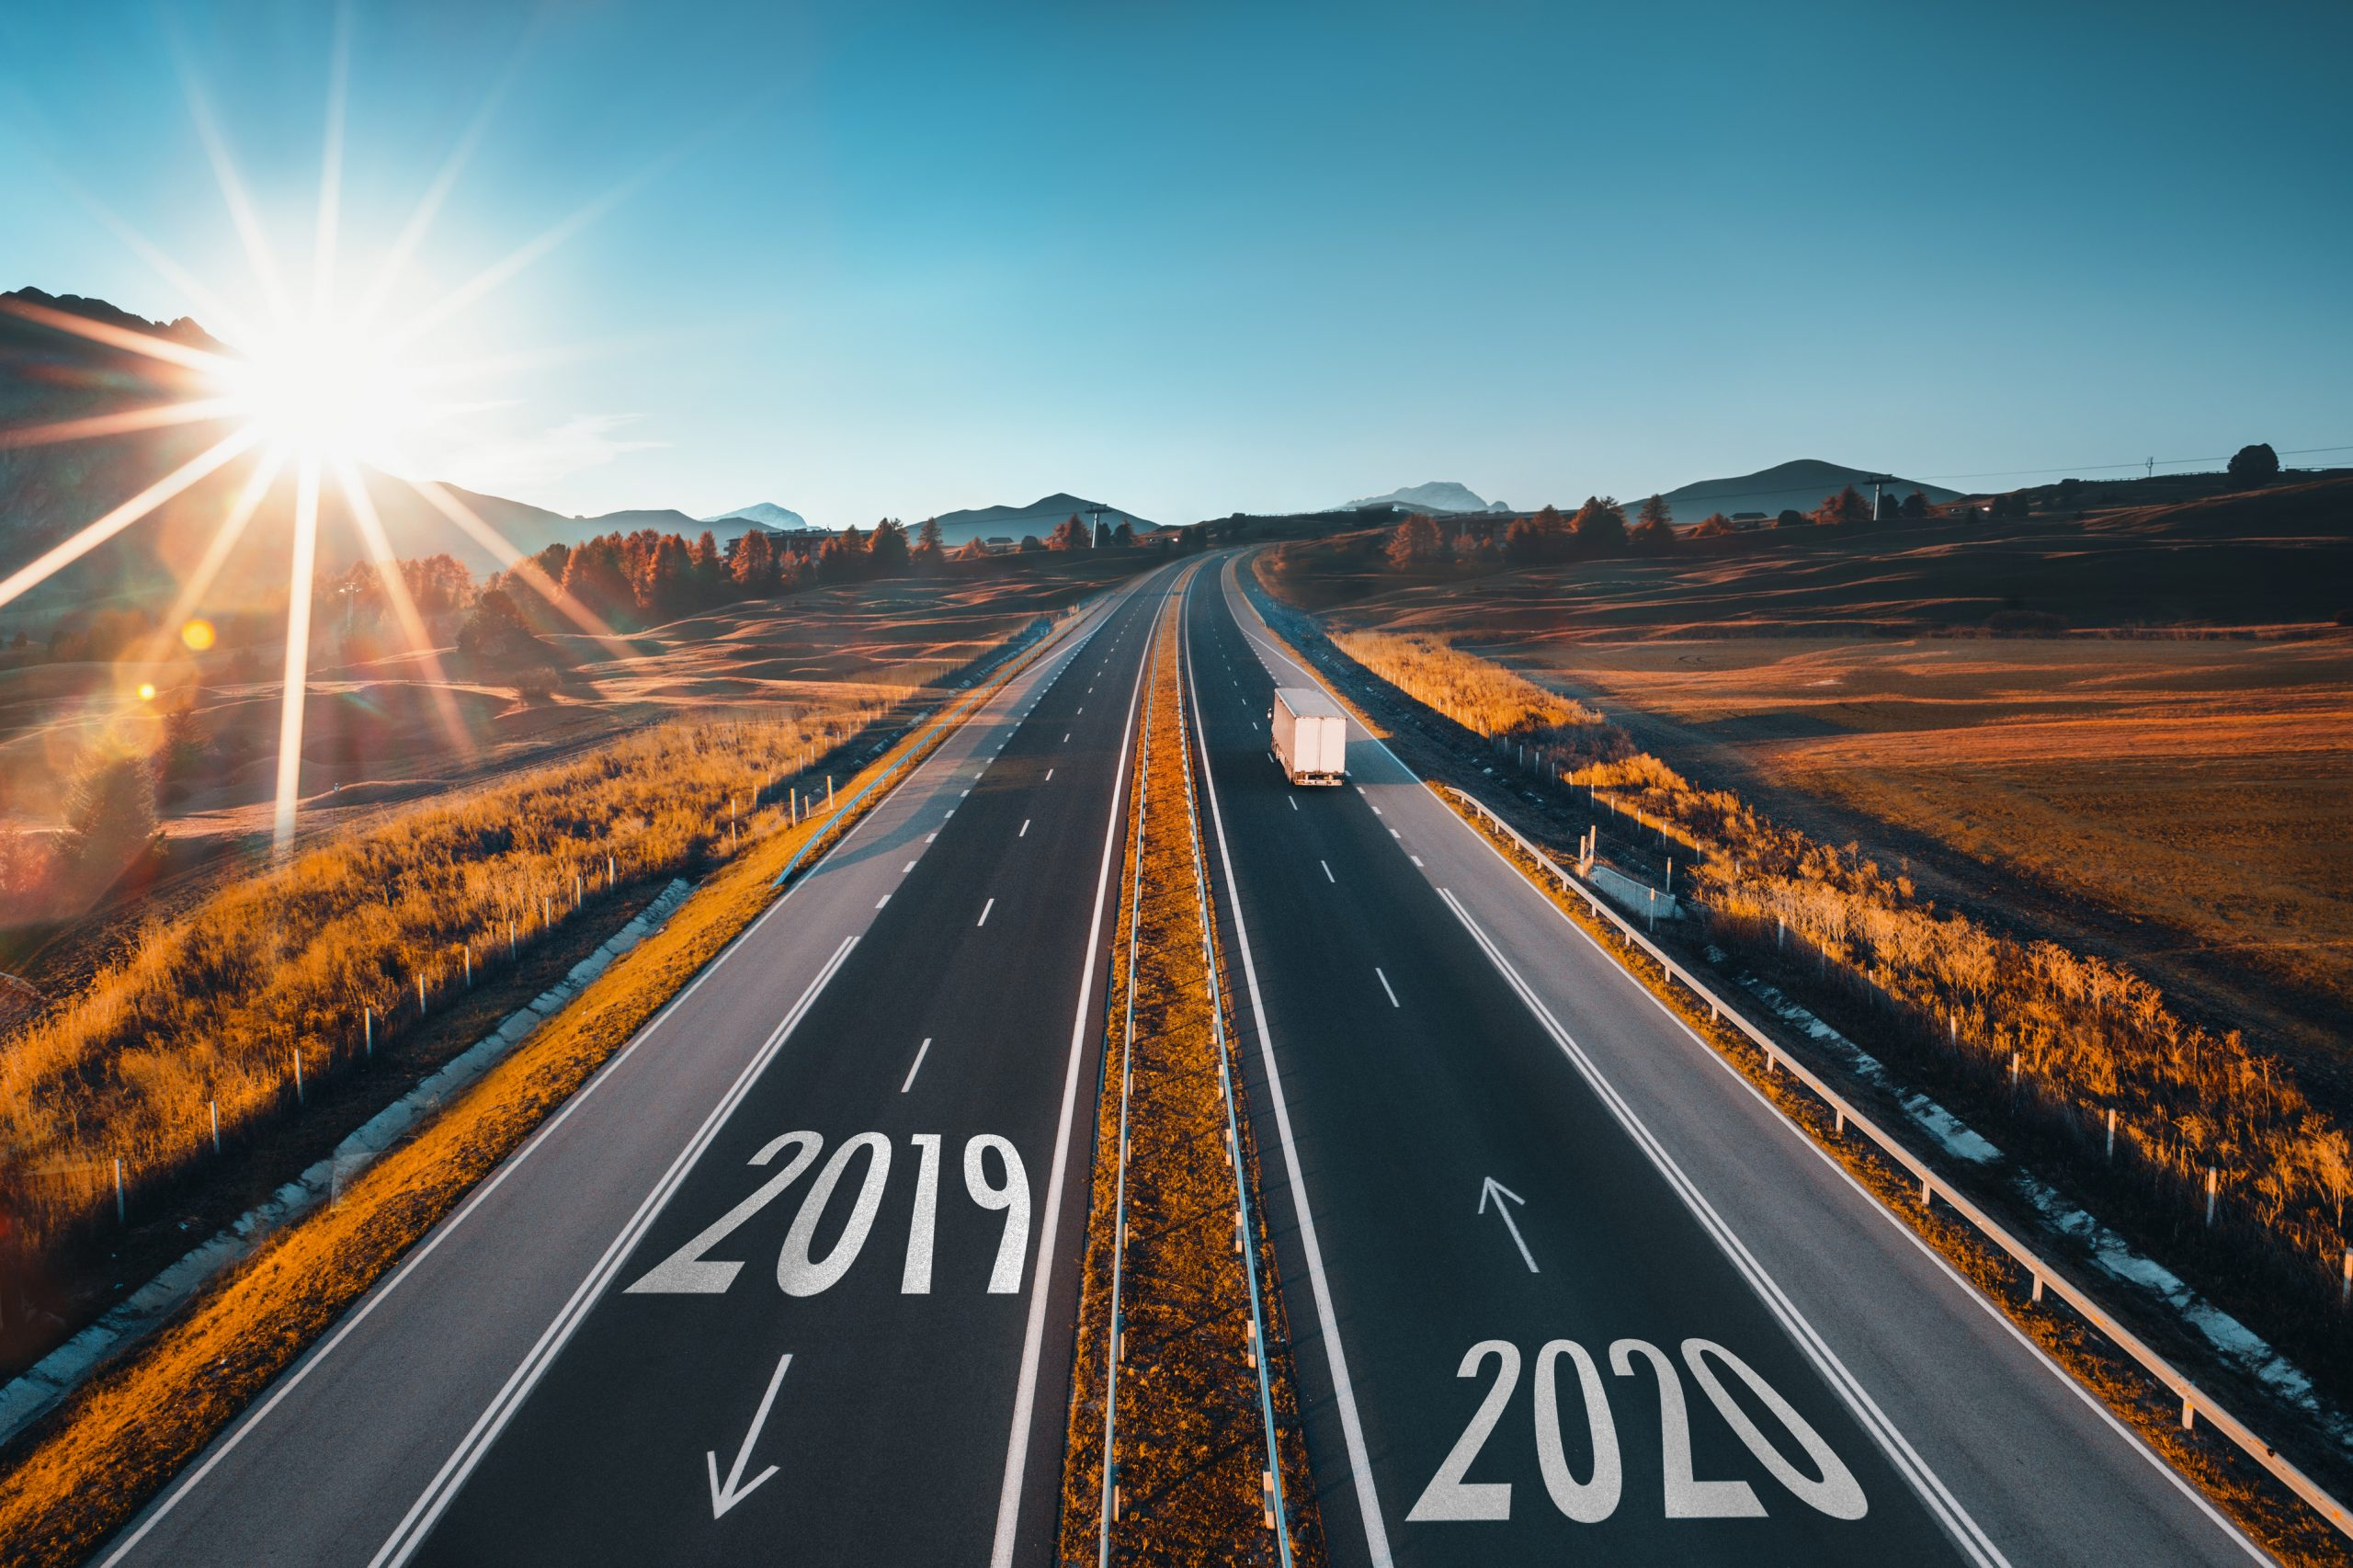 2019 in Rear-View and 2020 Vision